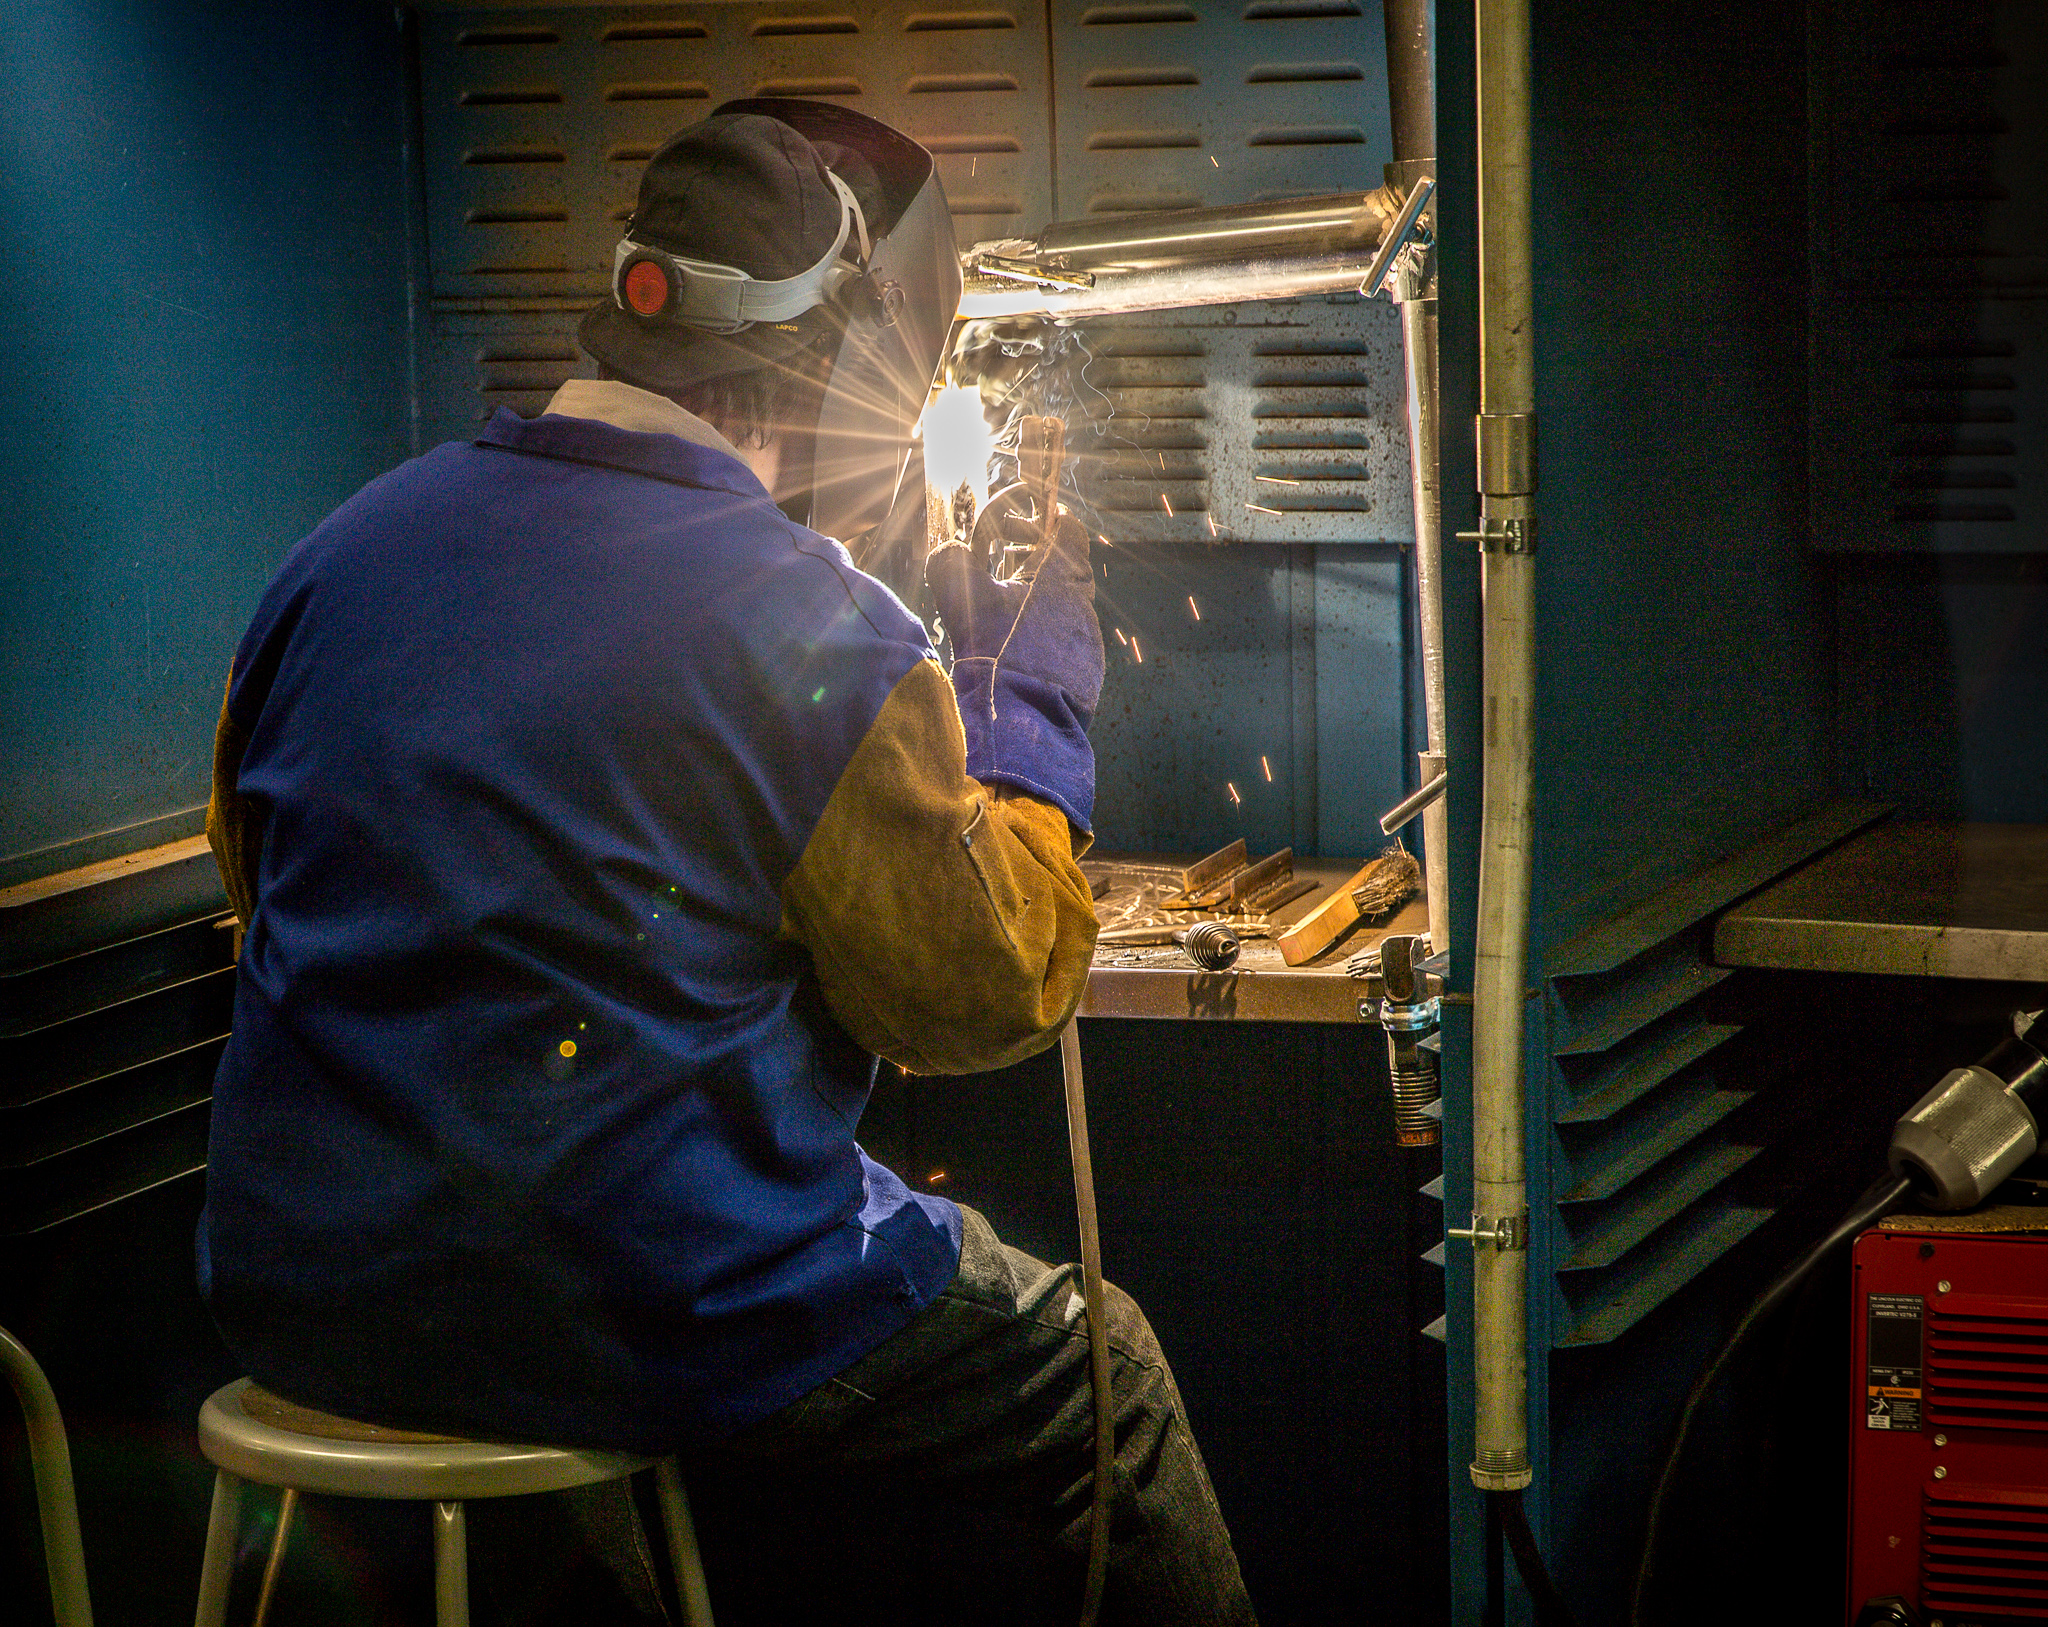 Combination Welding - The Combination Welding Program is a series of comprehensive courses to provide graduates with a well - rounded back-ground in various welding applications and techniques based on ASME and AWS specifications. Students will be prepared to participate in a variety of projects with a reasonable chance to pass qualification tests. This program provides the training for entry level employment in many facets of the welding field.